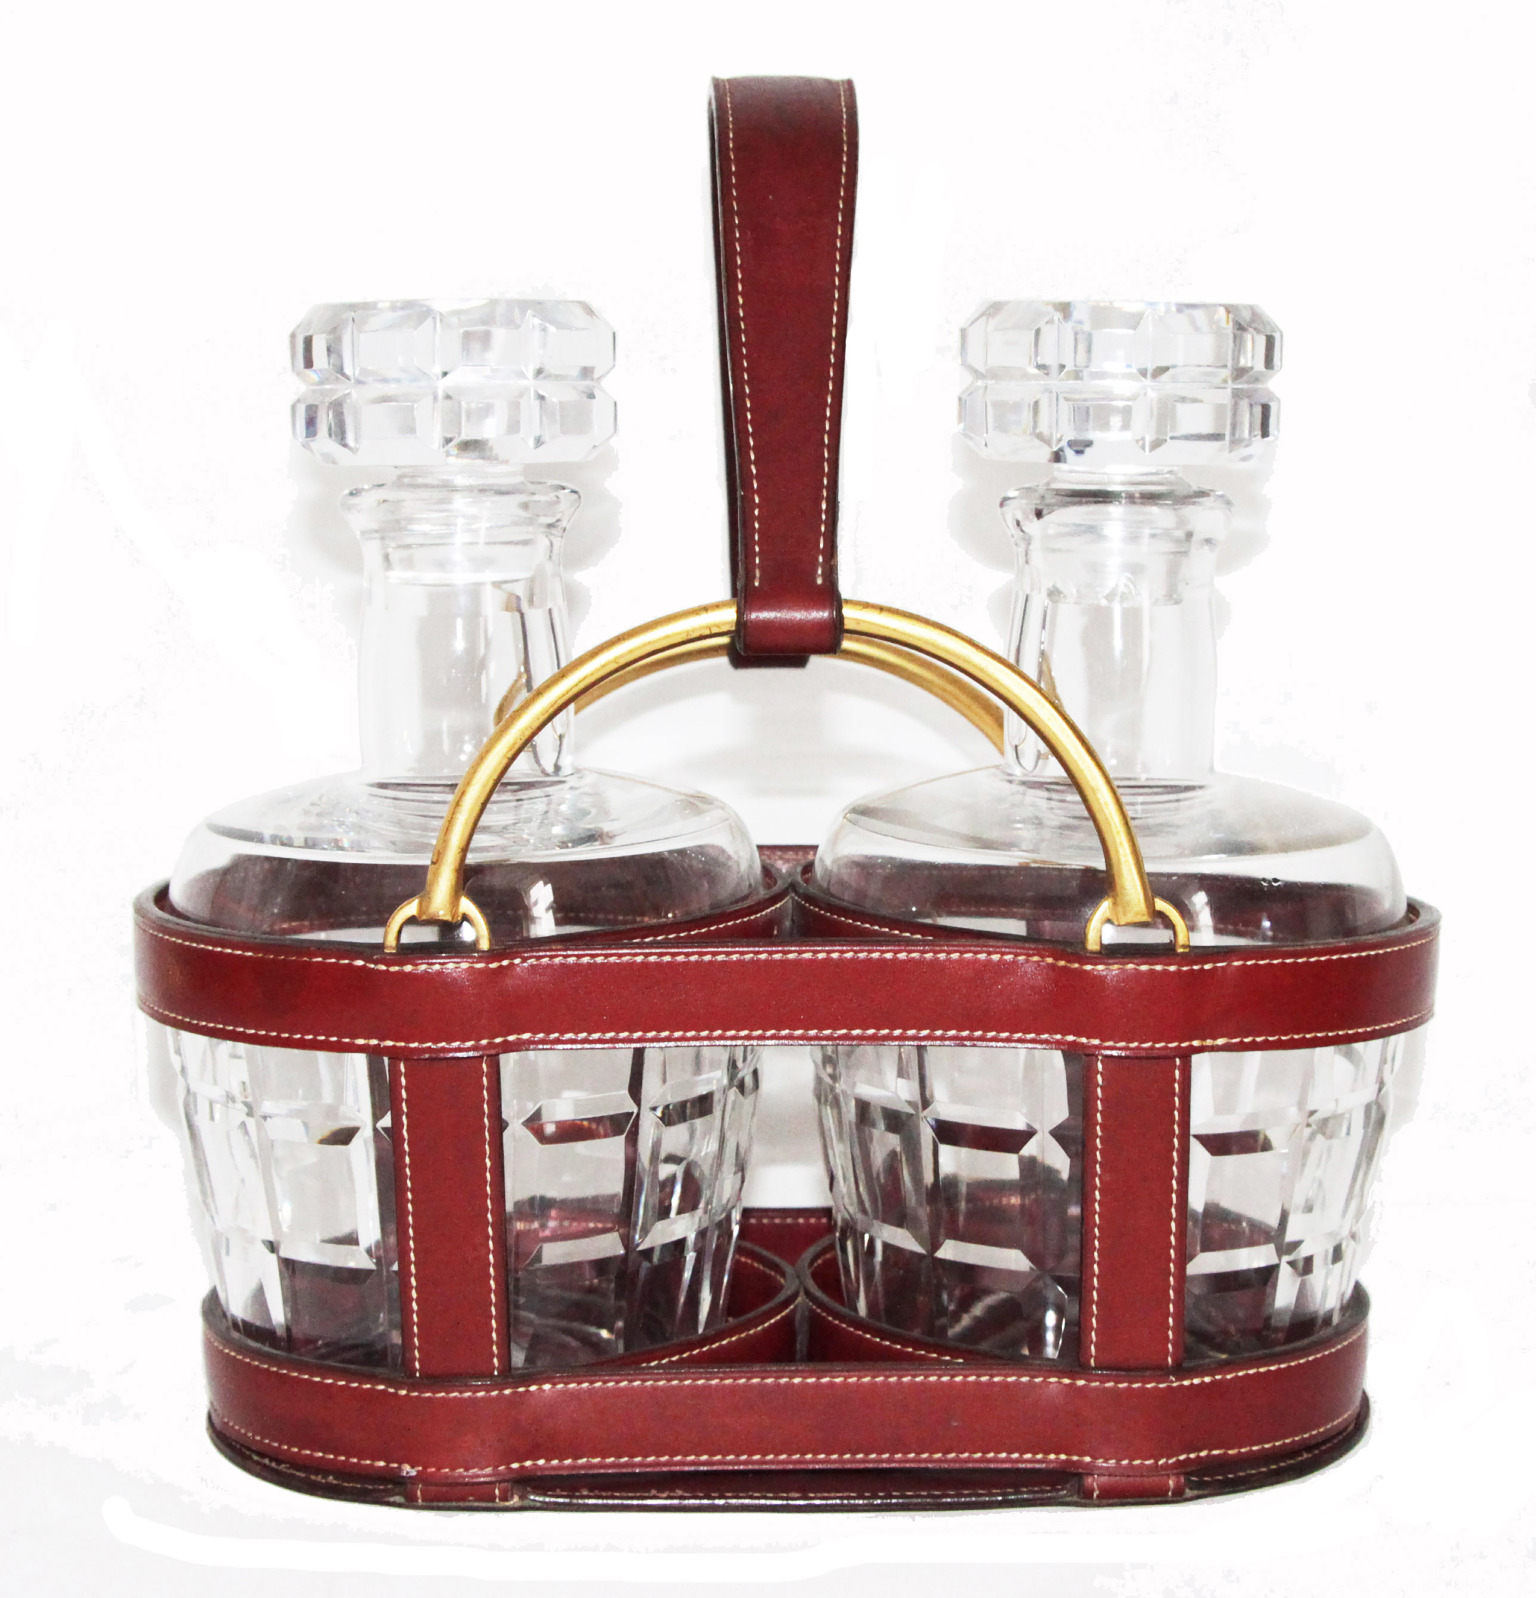 Hermès double crystal bottle set leather, 1960